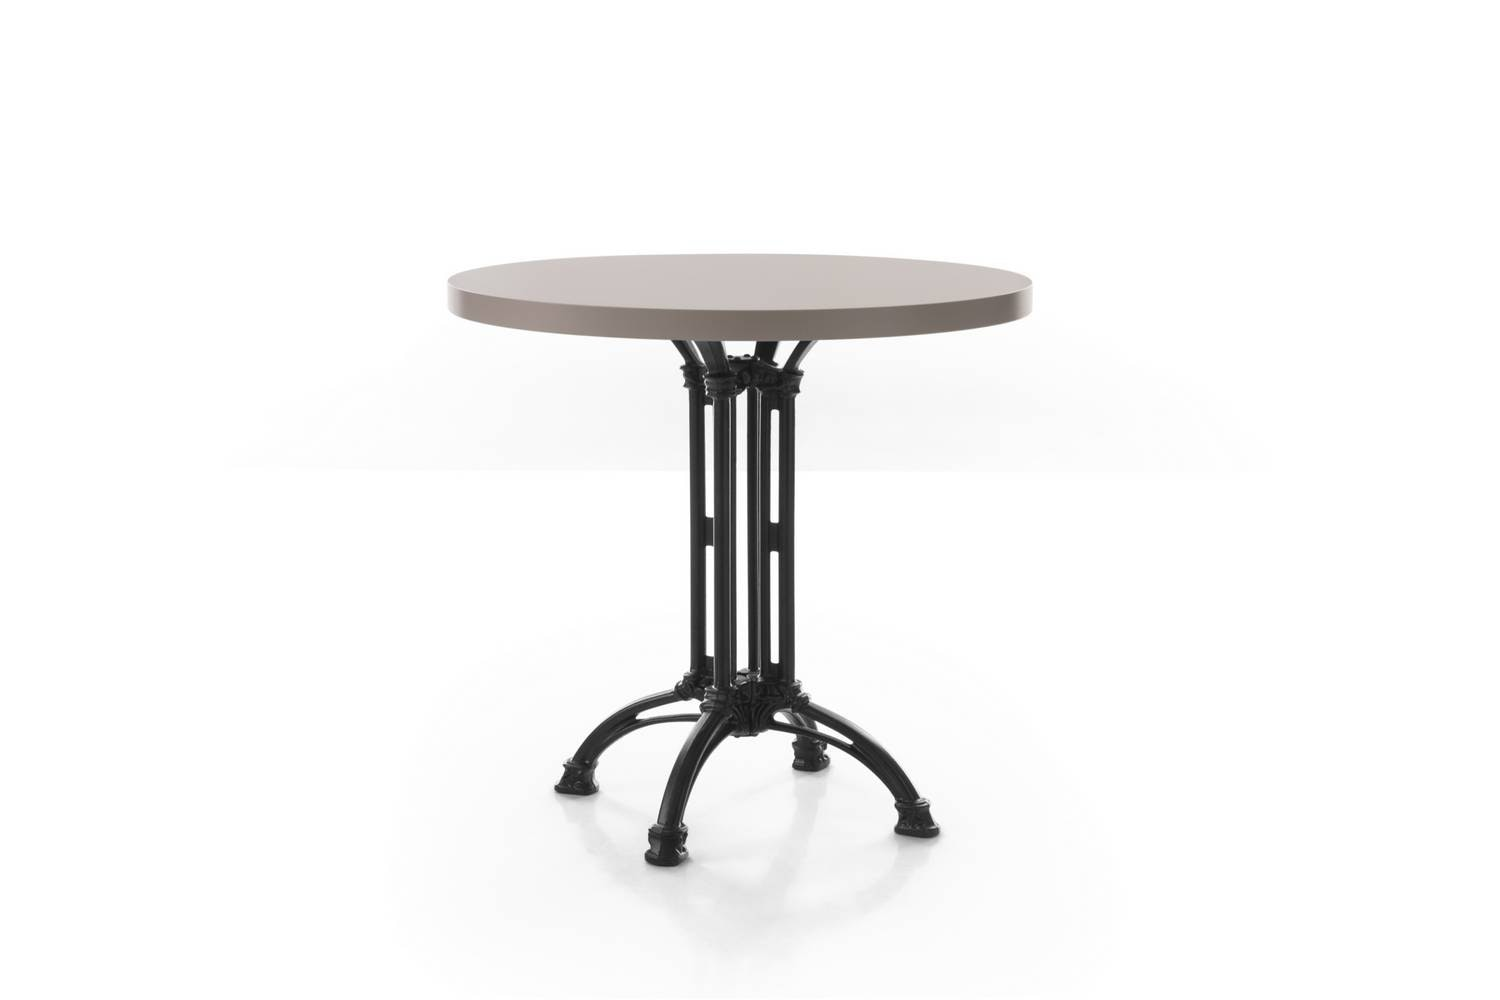 Vermouth Table by Gebruder Thonet Vienna for Wiener GTV Design